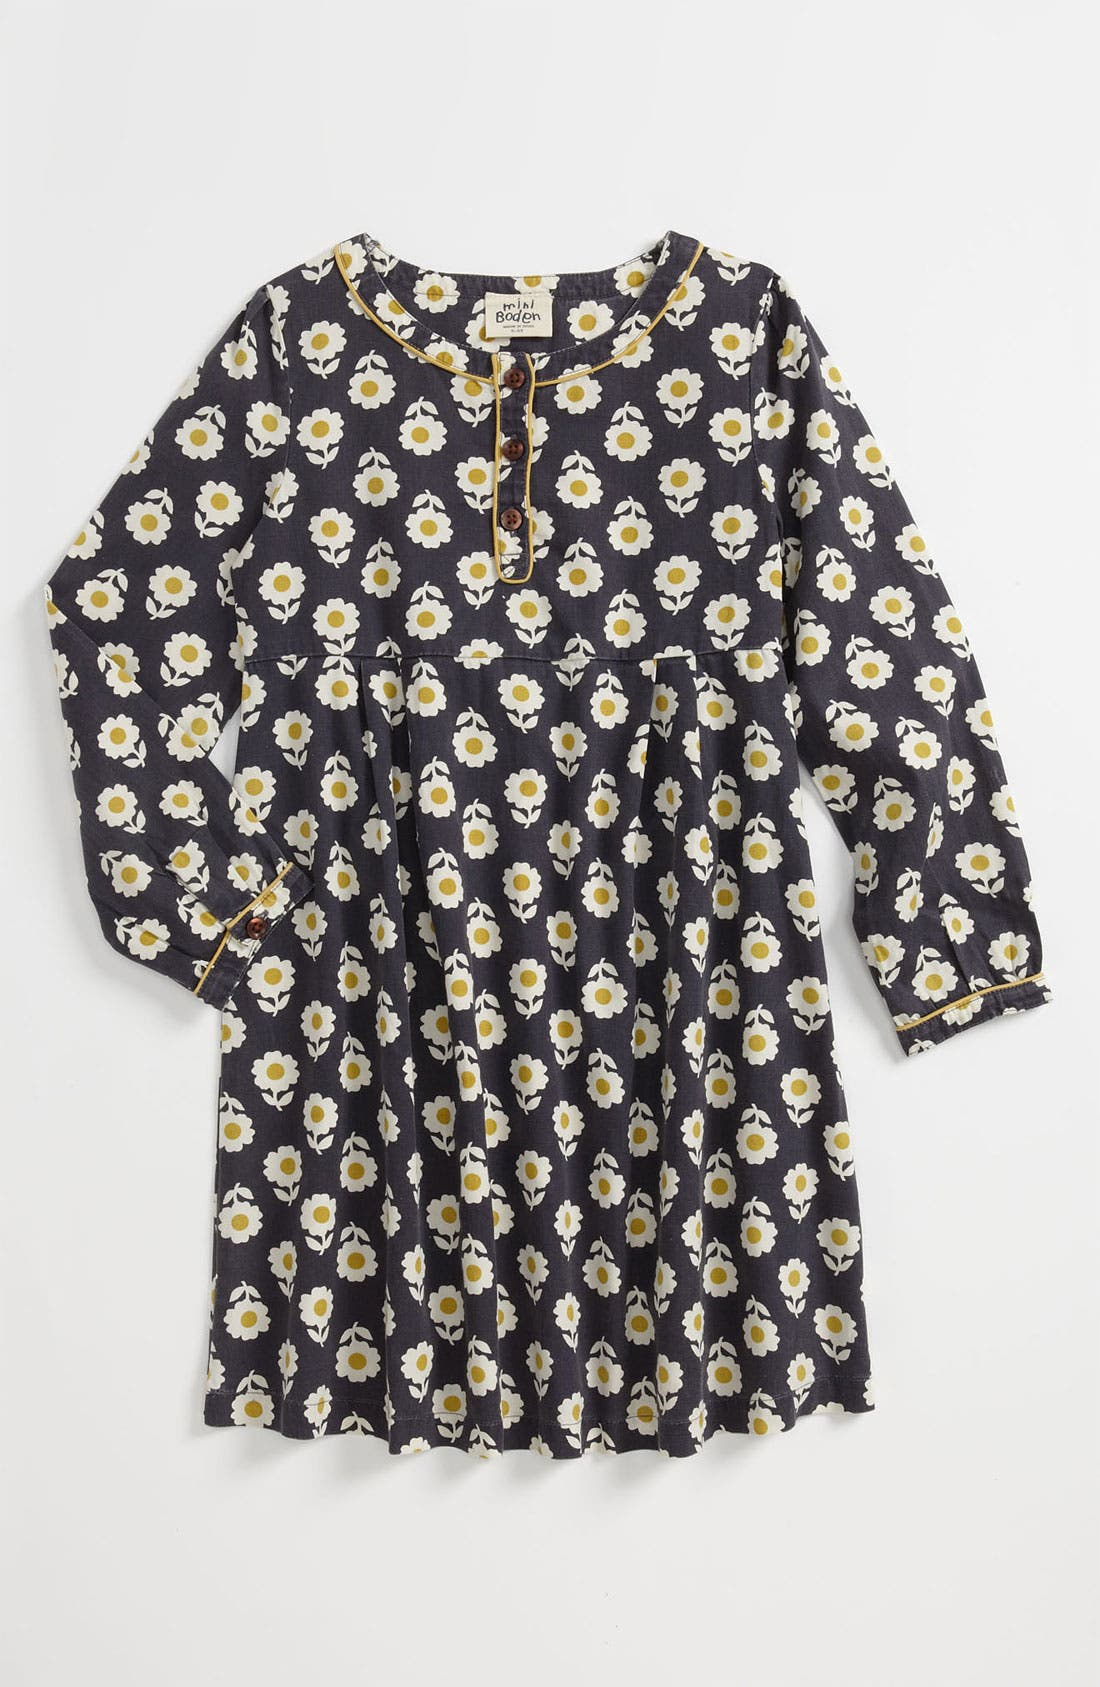 Main Image - Mini Boden 'Easy' Print Dress (Little Girls & Big Girls)